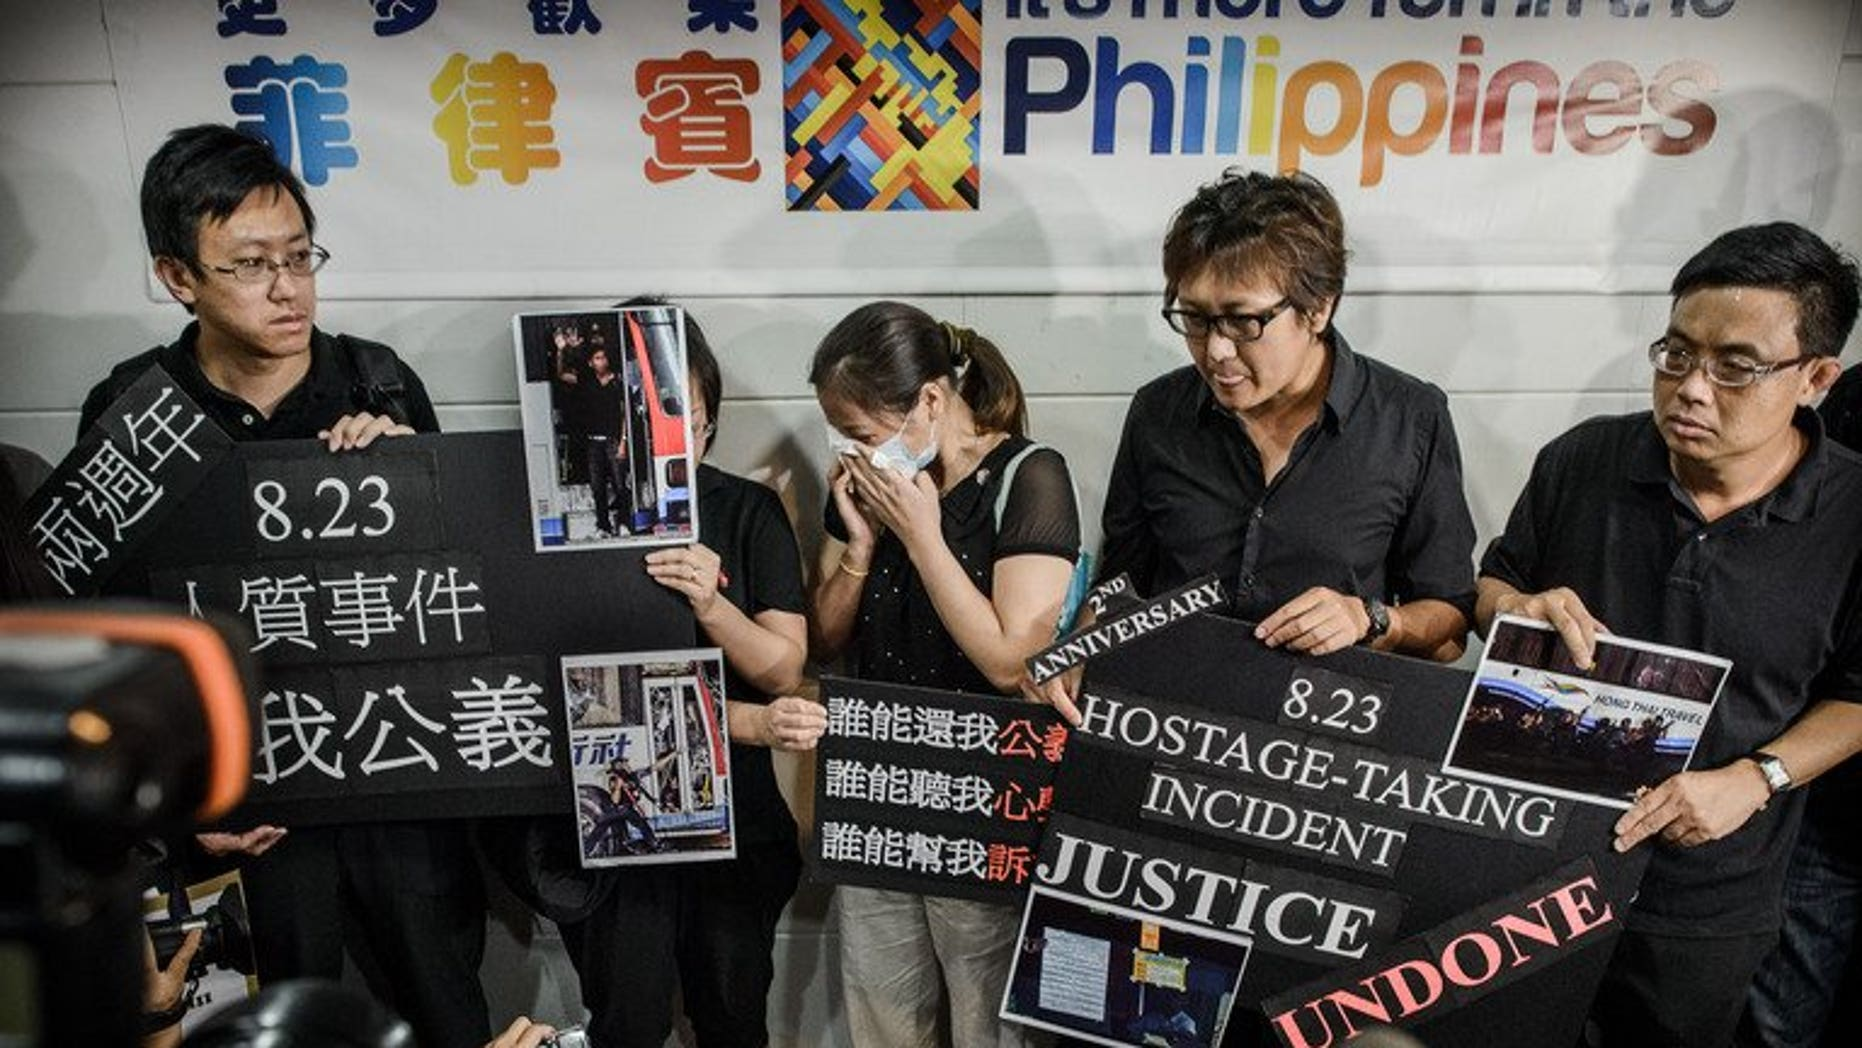 Survivors and relatives of eight Hong Kong tourists killed in a 2010 Philippine bus hostage fiasco gather outside the Philippines consulate in Hong Kong to demand an apology on August 23, 2012. Hong Kong survivors of a Manila hostage crisis and families of those killed sued the Philippine government Thursday to demand an apology and compensation, a day before the tragedy's third anniversary.